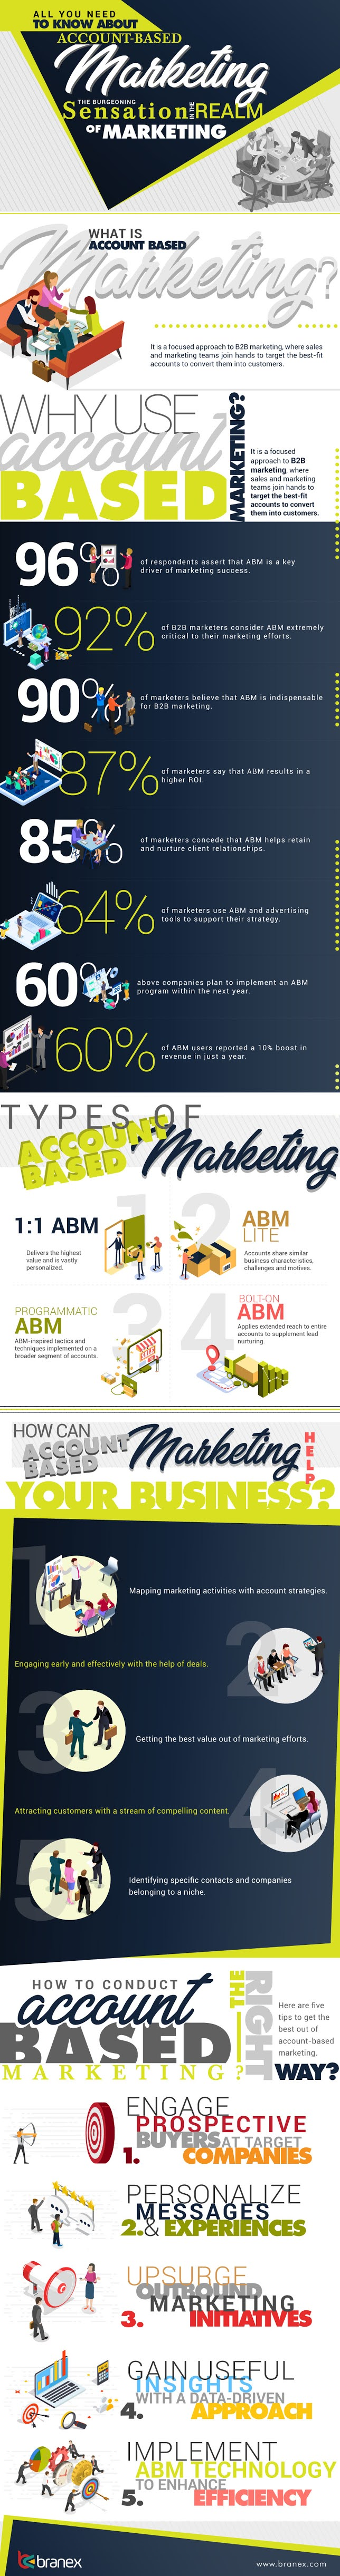 All you need to know about Account-Based Marketing: The Burgeoning Sensation in the Realm of Marketing #infographic